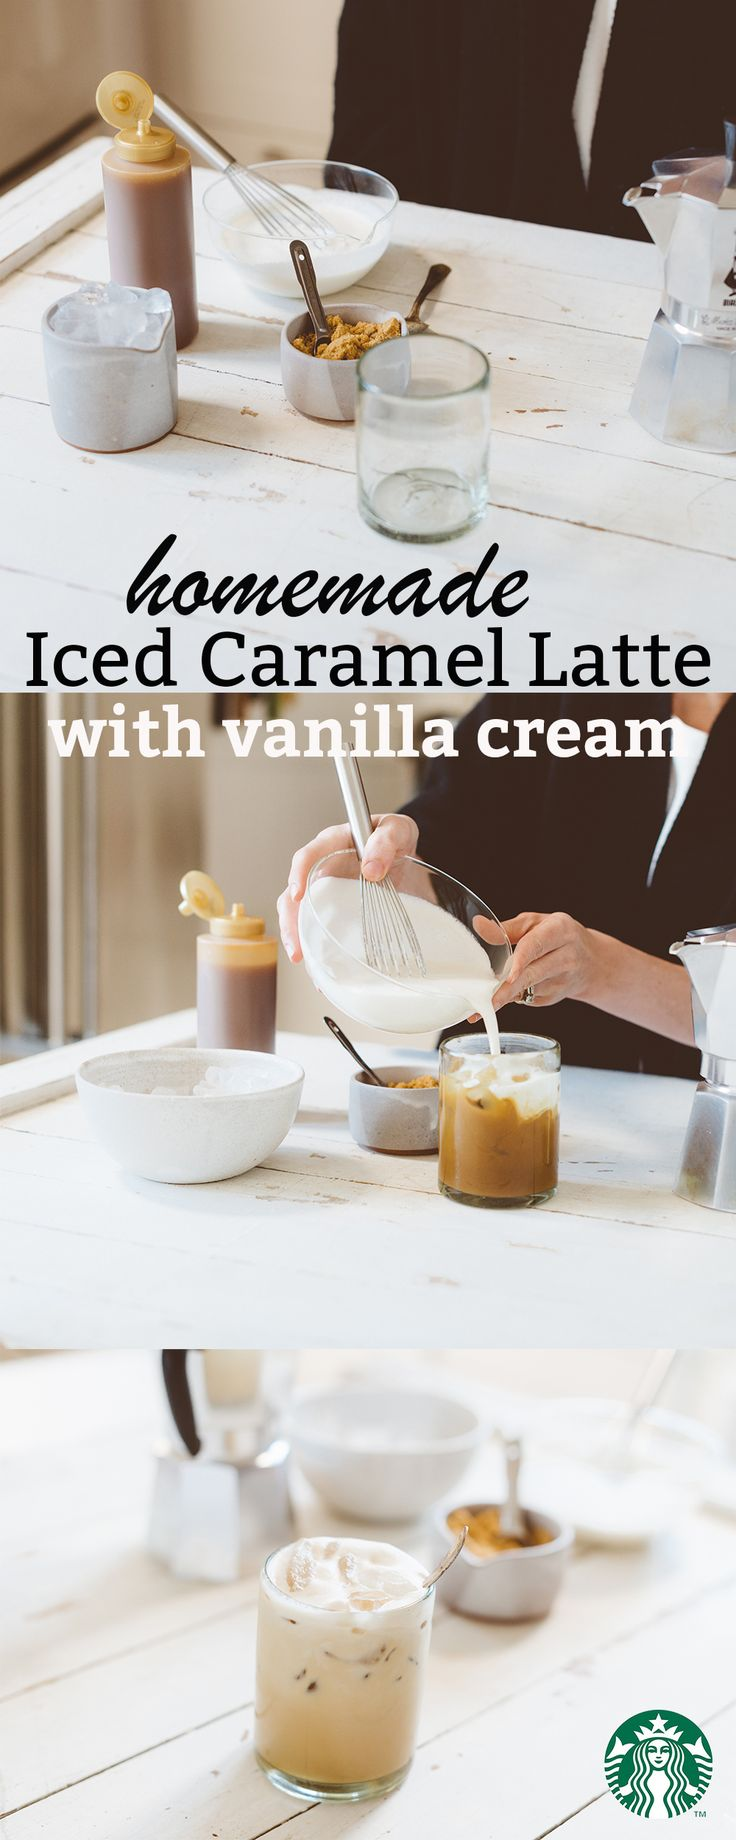 A subtly sweet iced latte topped with silky vanilla cream. Iced Caramel Latte Recipe: Add caramel sauce, brown sugar and brewed espresso to a large glass. Mix together until combined, then add ice. Slowly top off with about ½ cup of the vanilla cream. Serve and enjoy! Visit 1912 Pike for the full recipe.